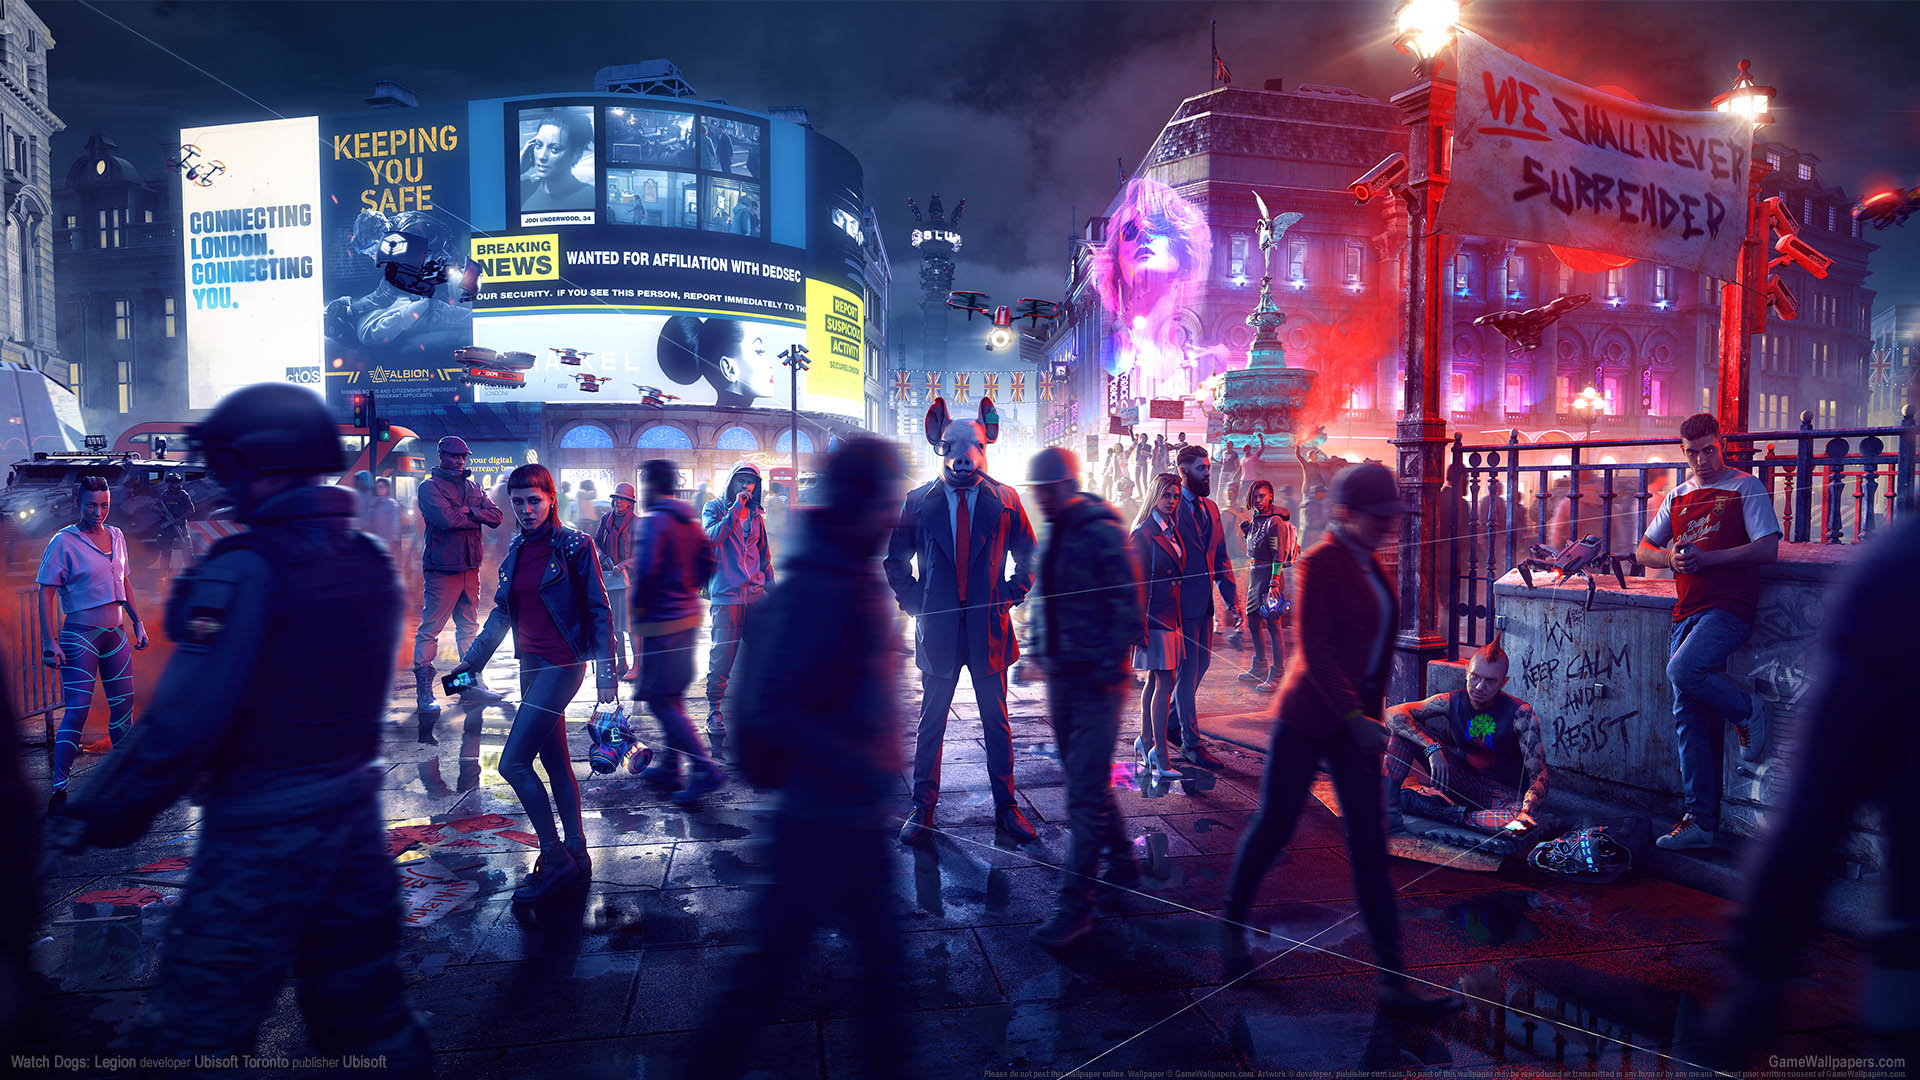 Watch Dogs: Legion wallpaper 01 1920x1080